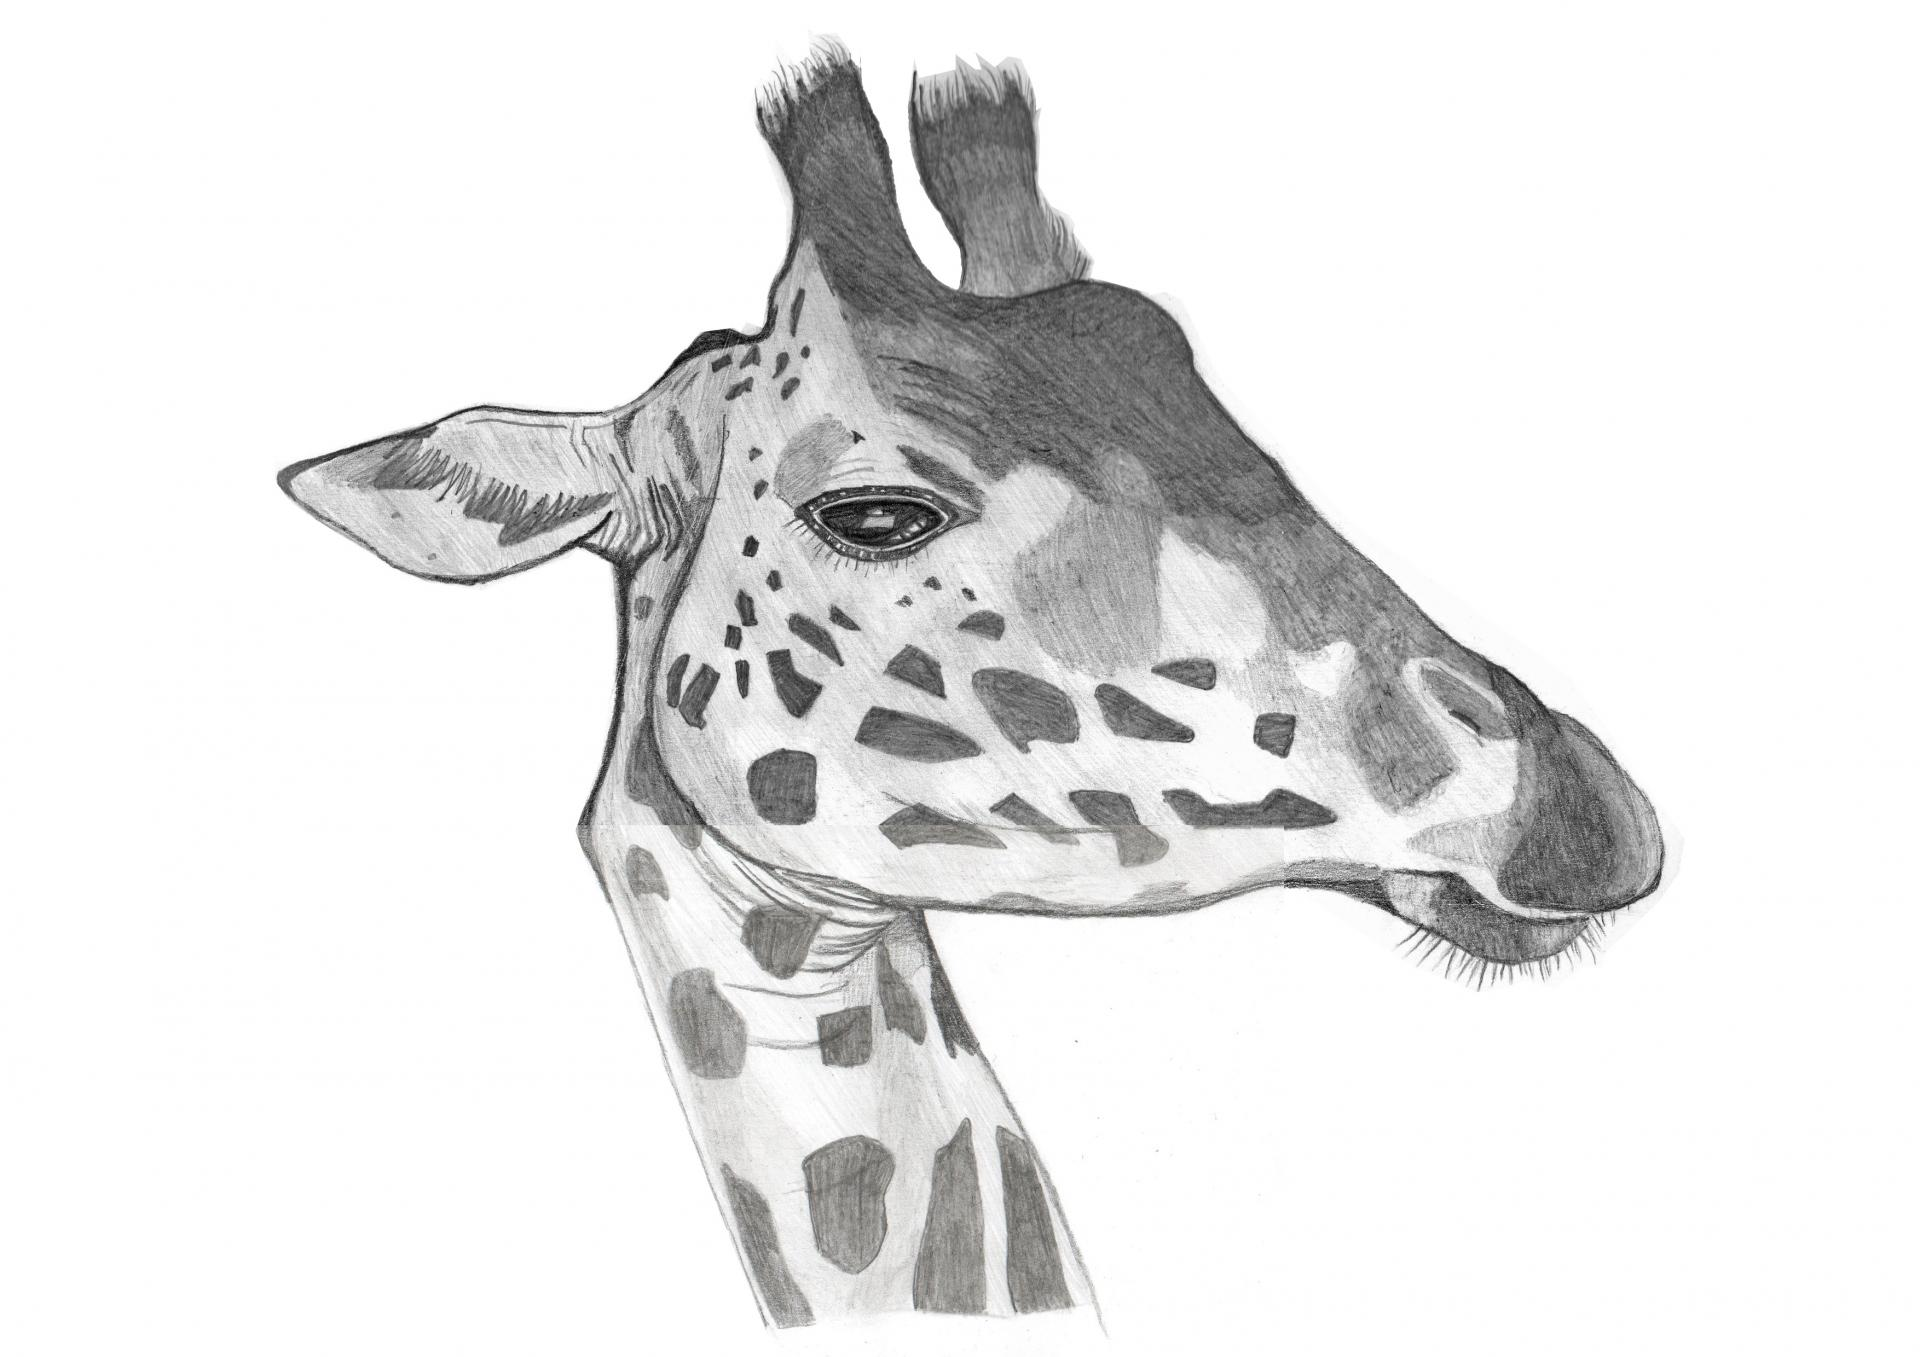 Girafe killian modifie 1